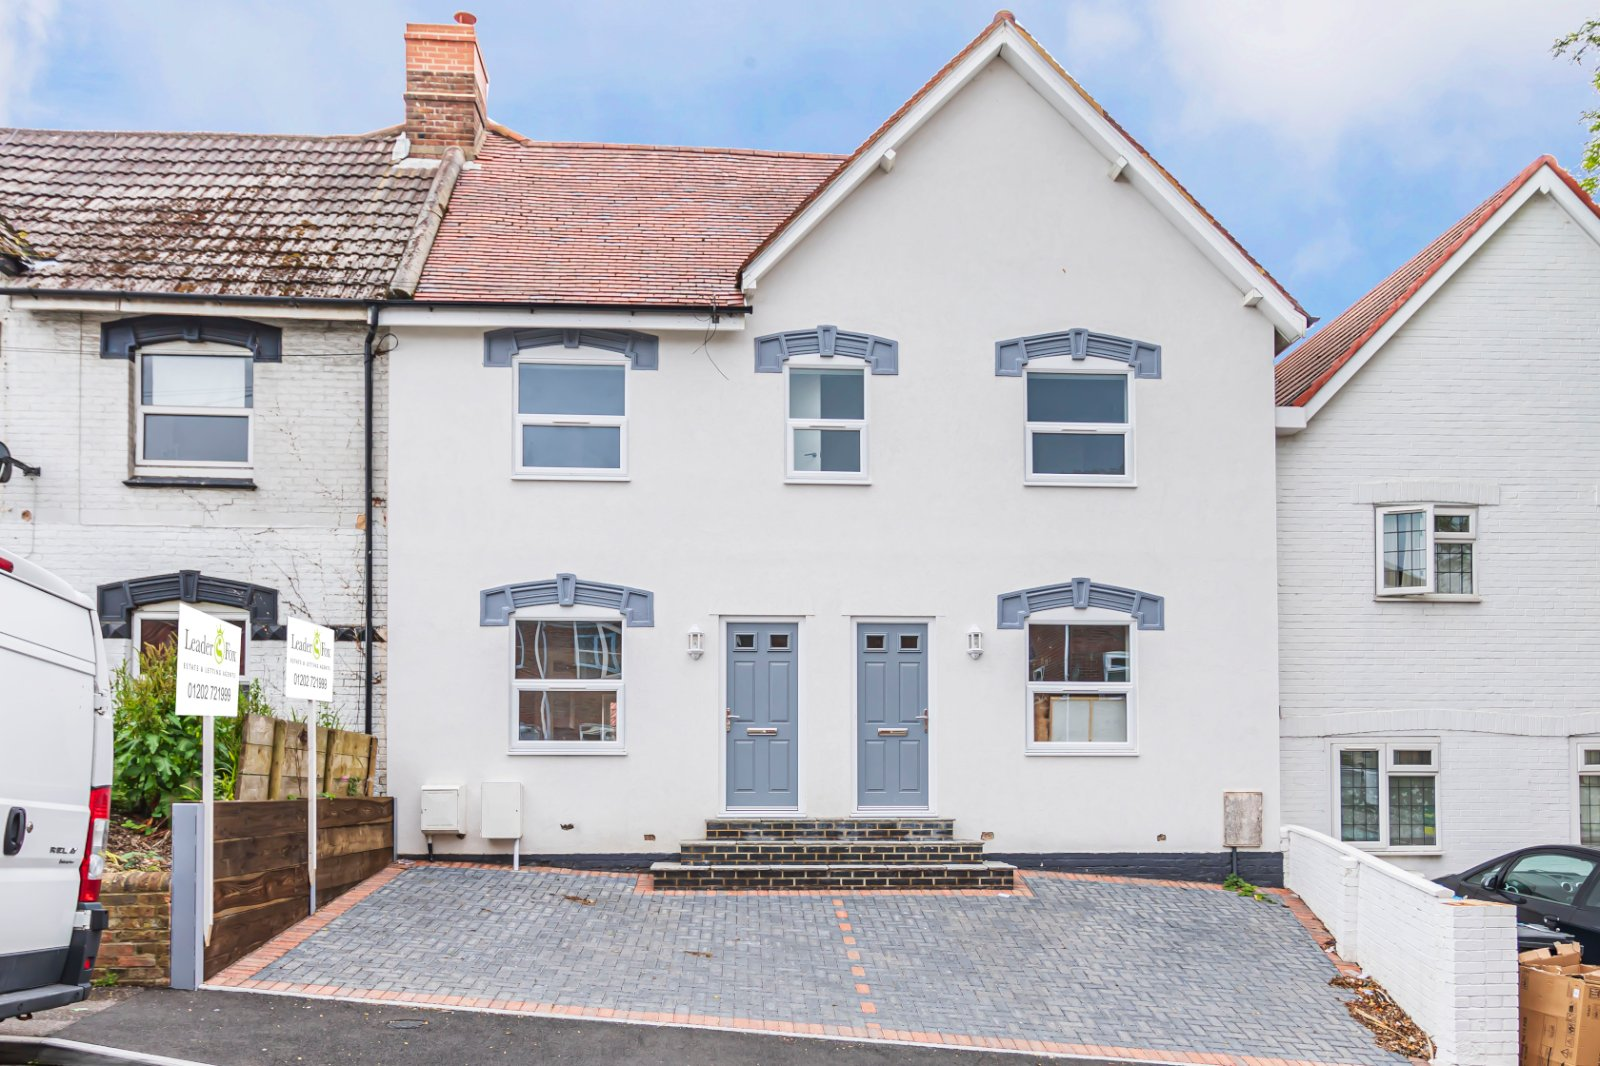 2 bed house for sale in Lower Parkstone 0